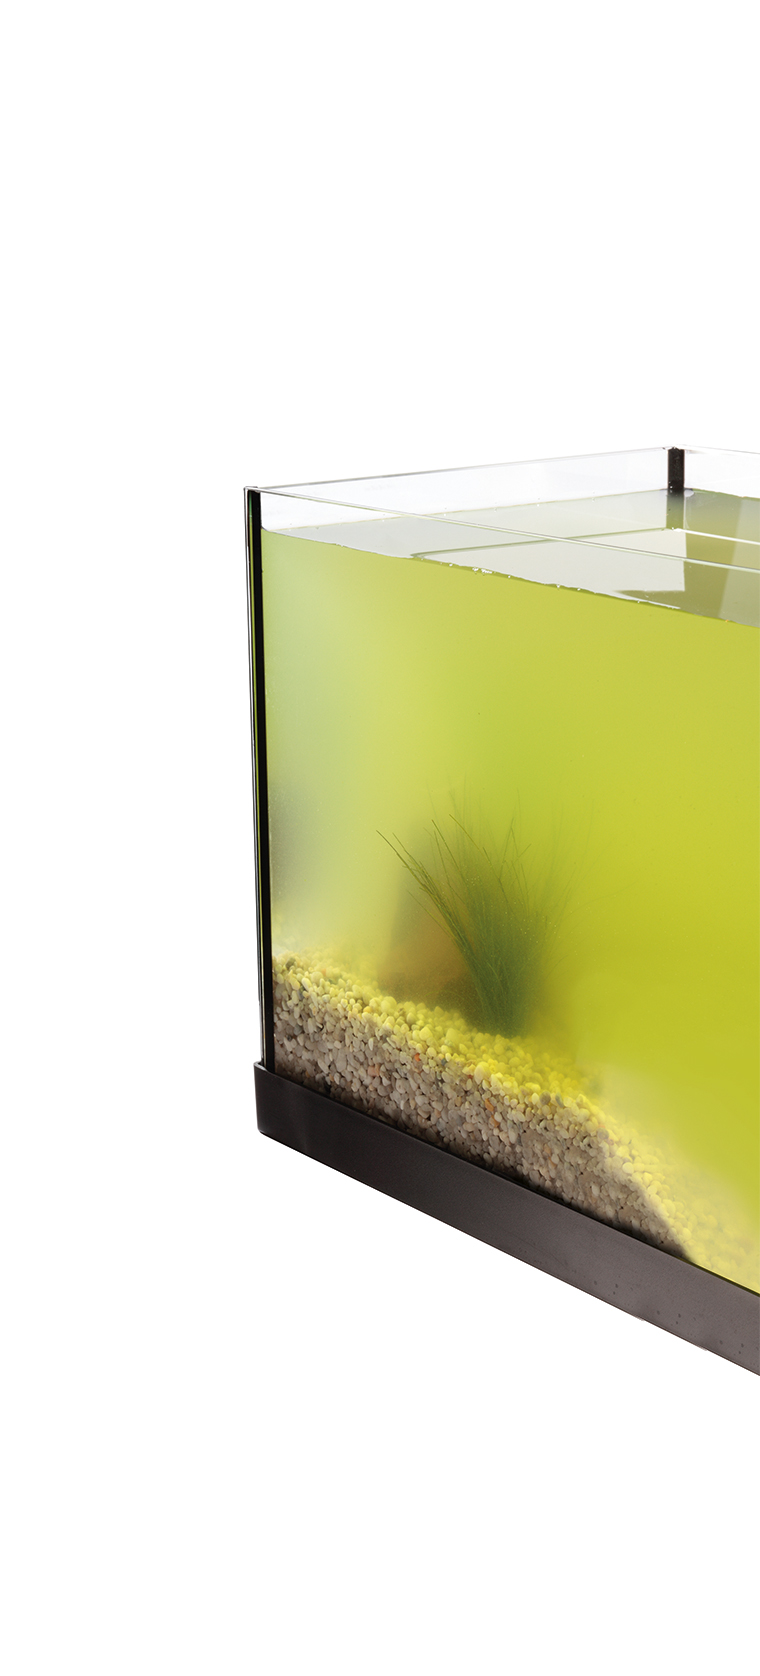 The corner of a glass aquarium filled with green water, obscuring it